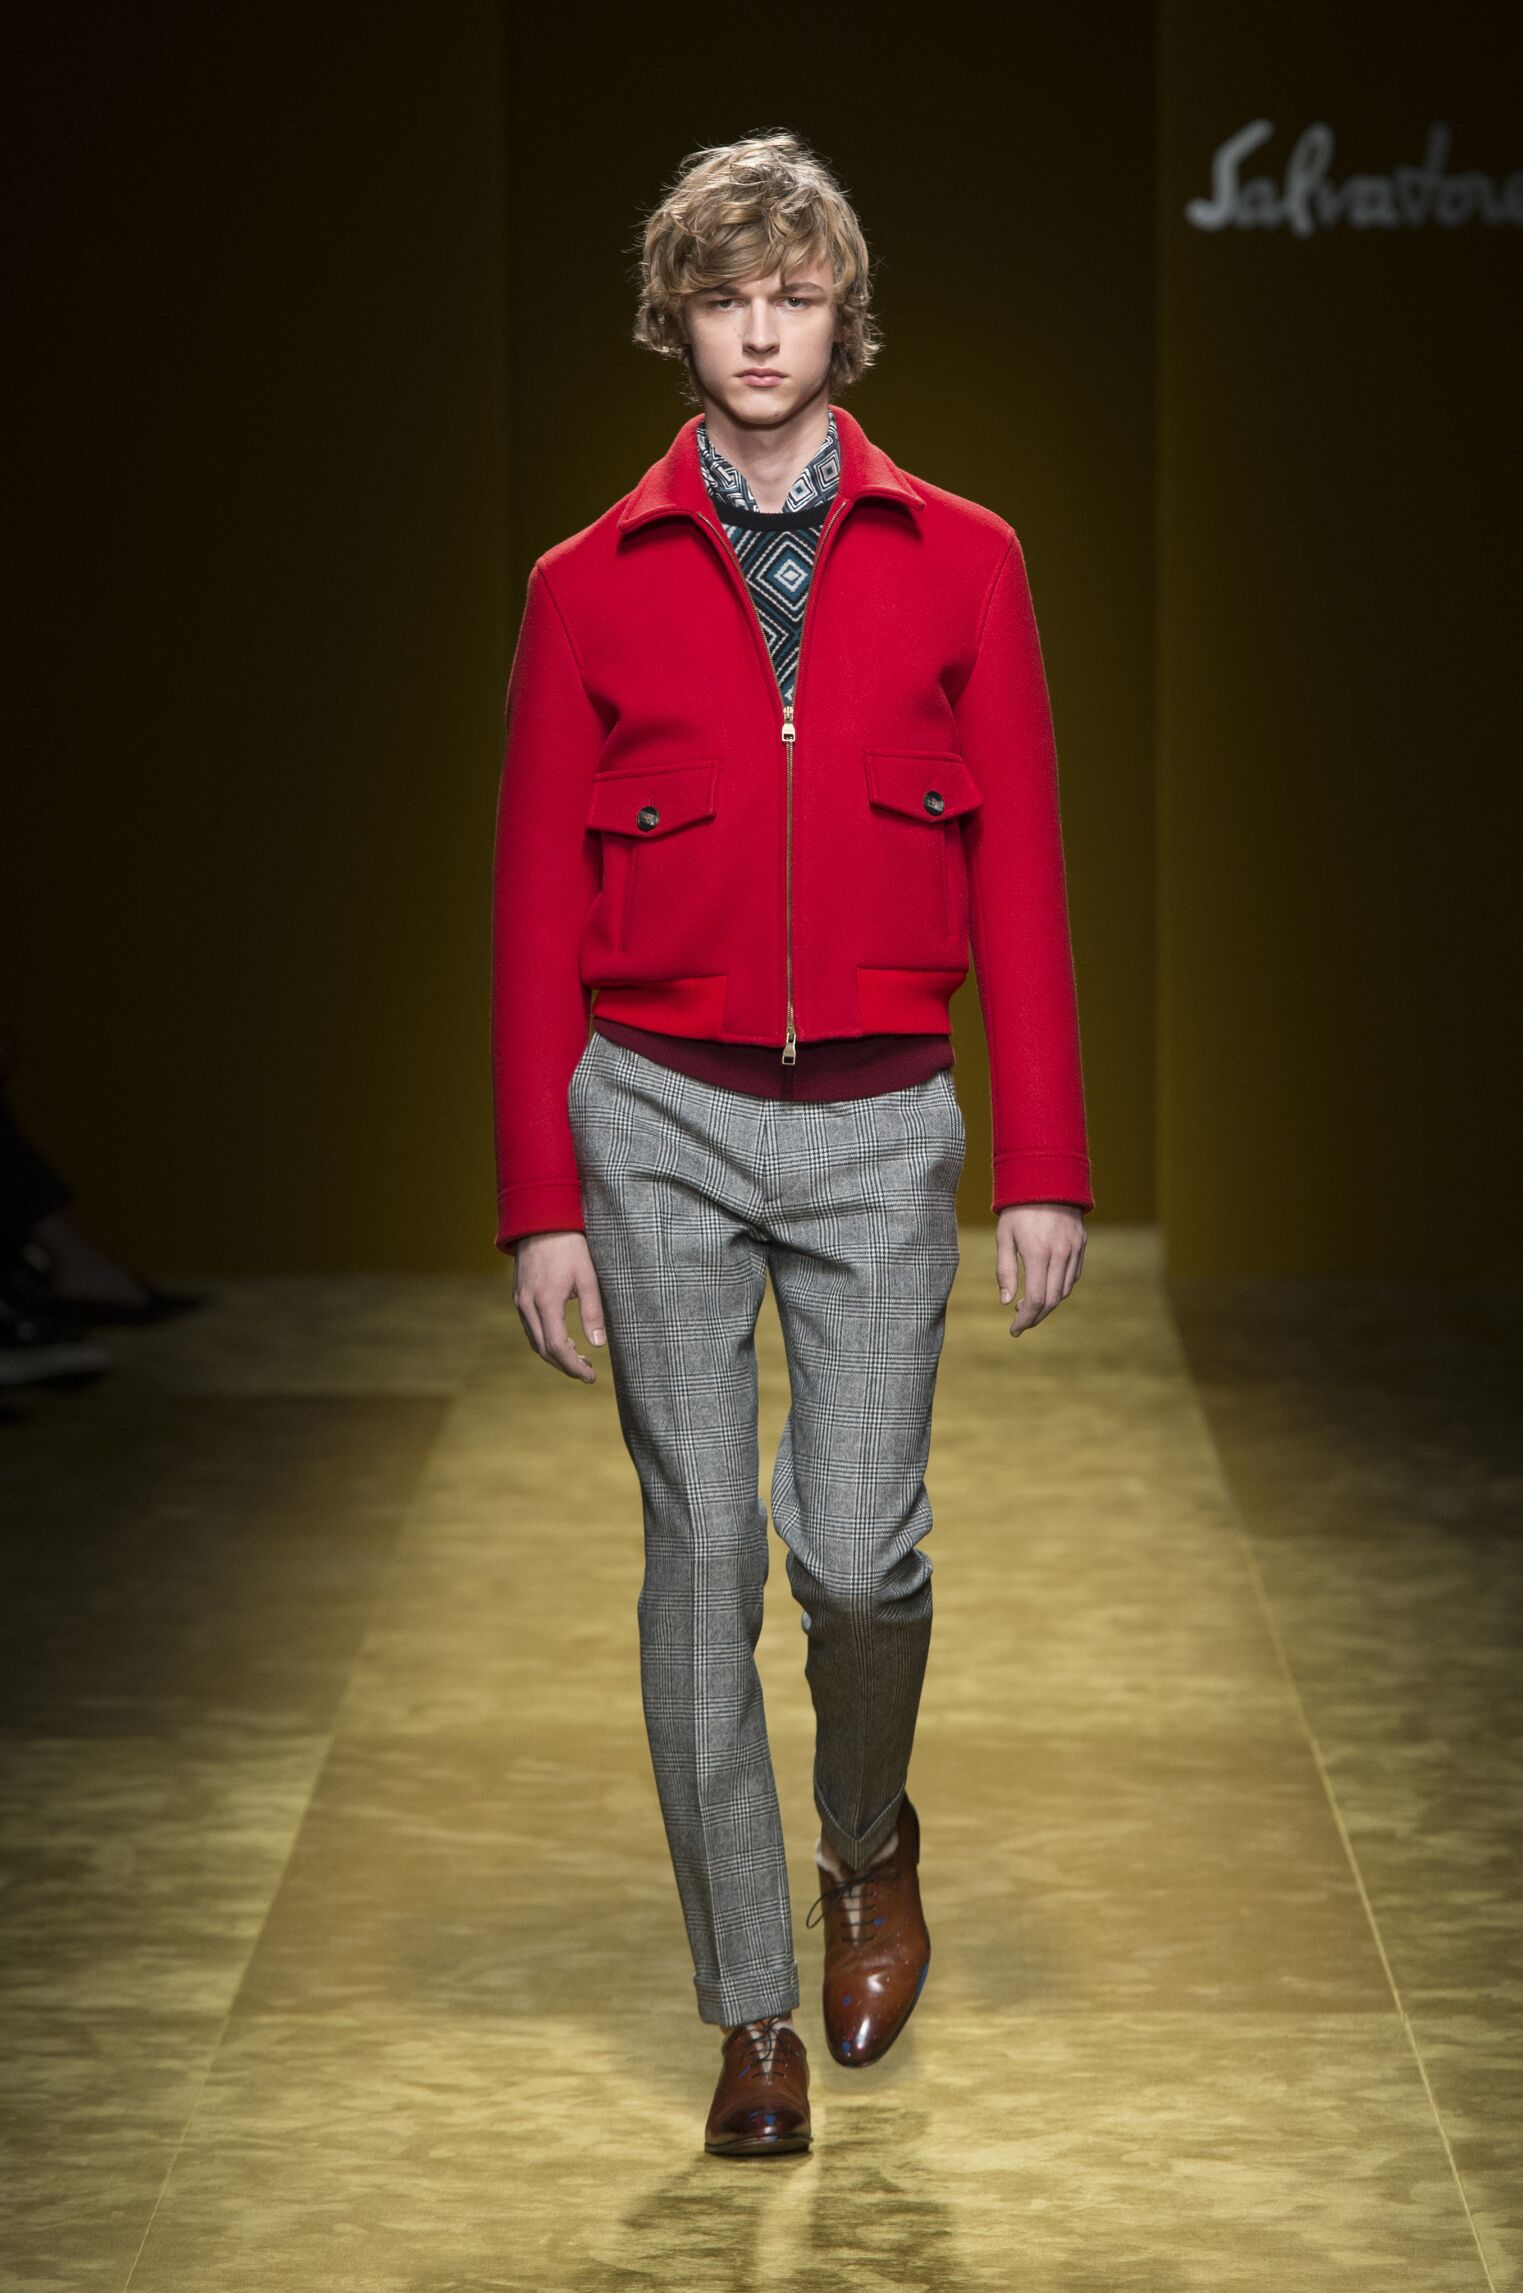 2016 Catwalk Salvatore Ferragamo Man Fashion Show Winter